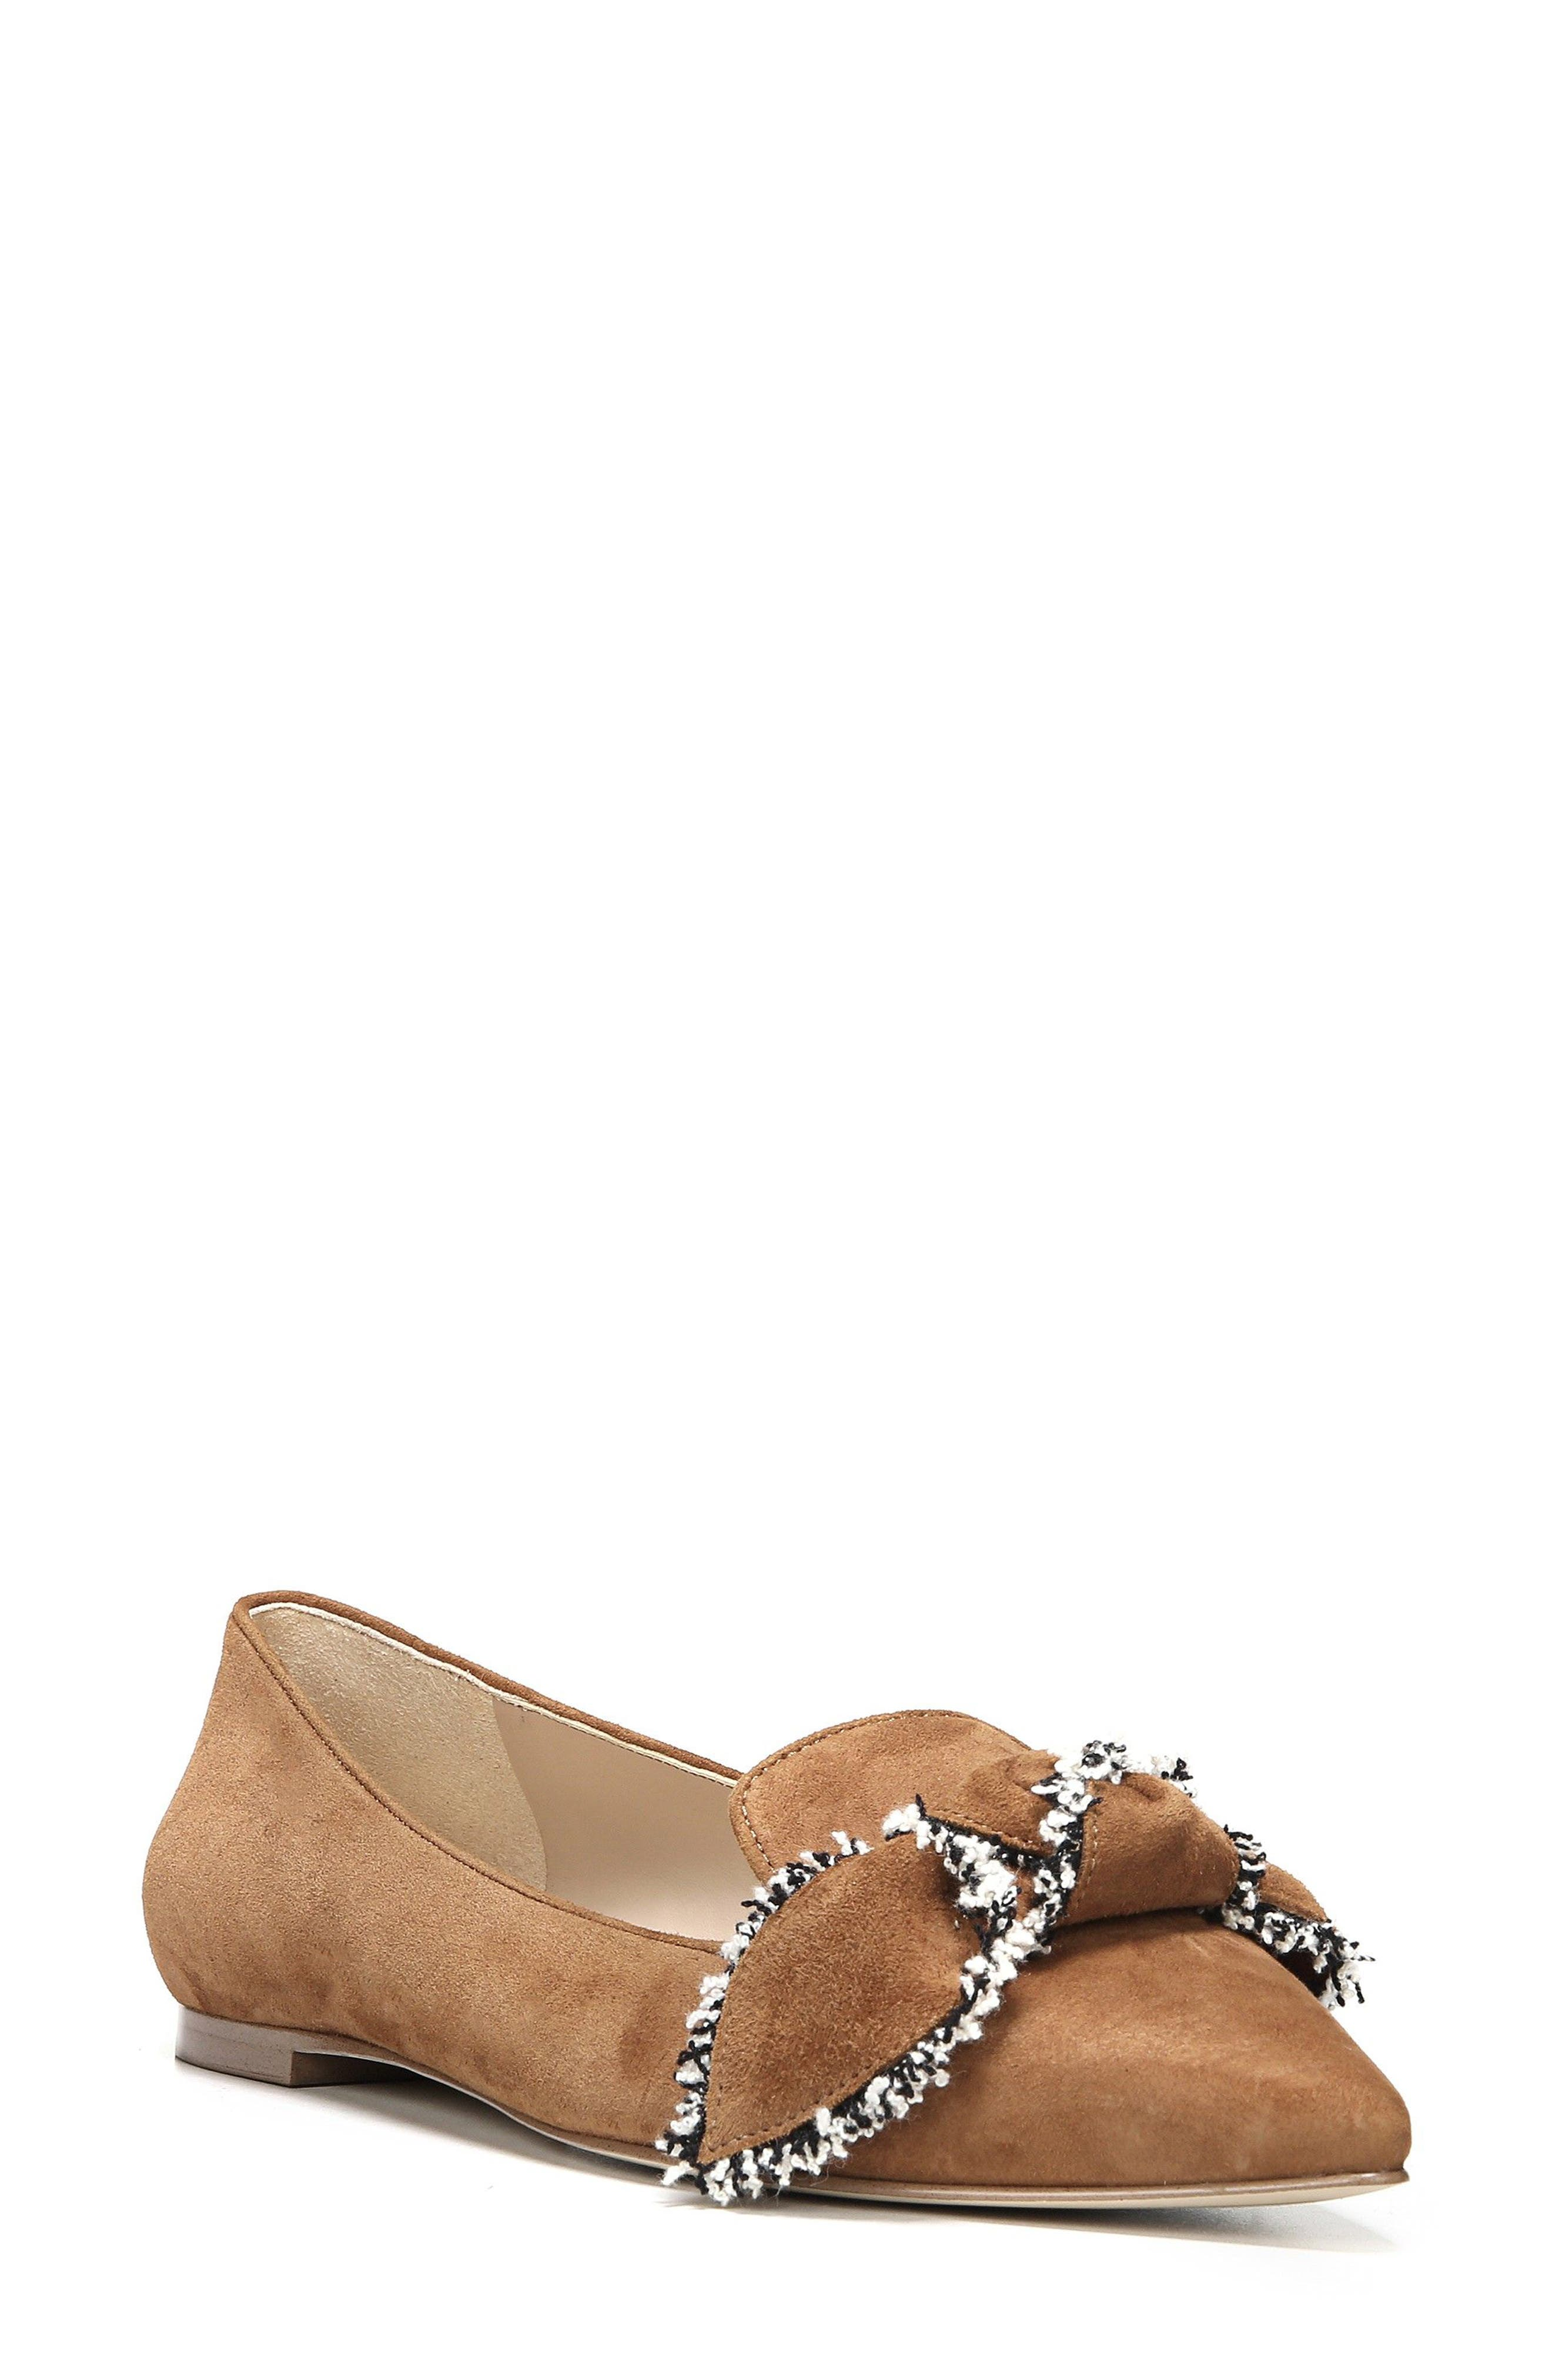 Rochester Bow Pointy Toe Flat,                             Main thumbnail 3, color,